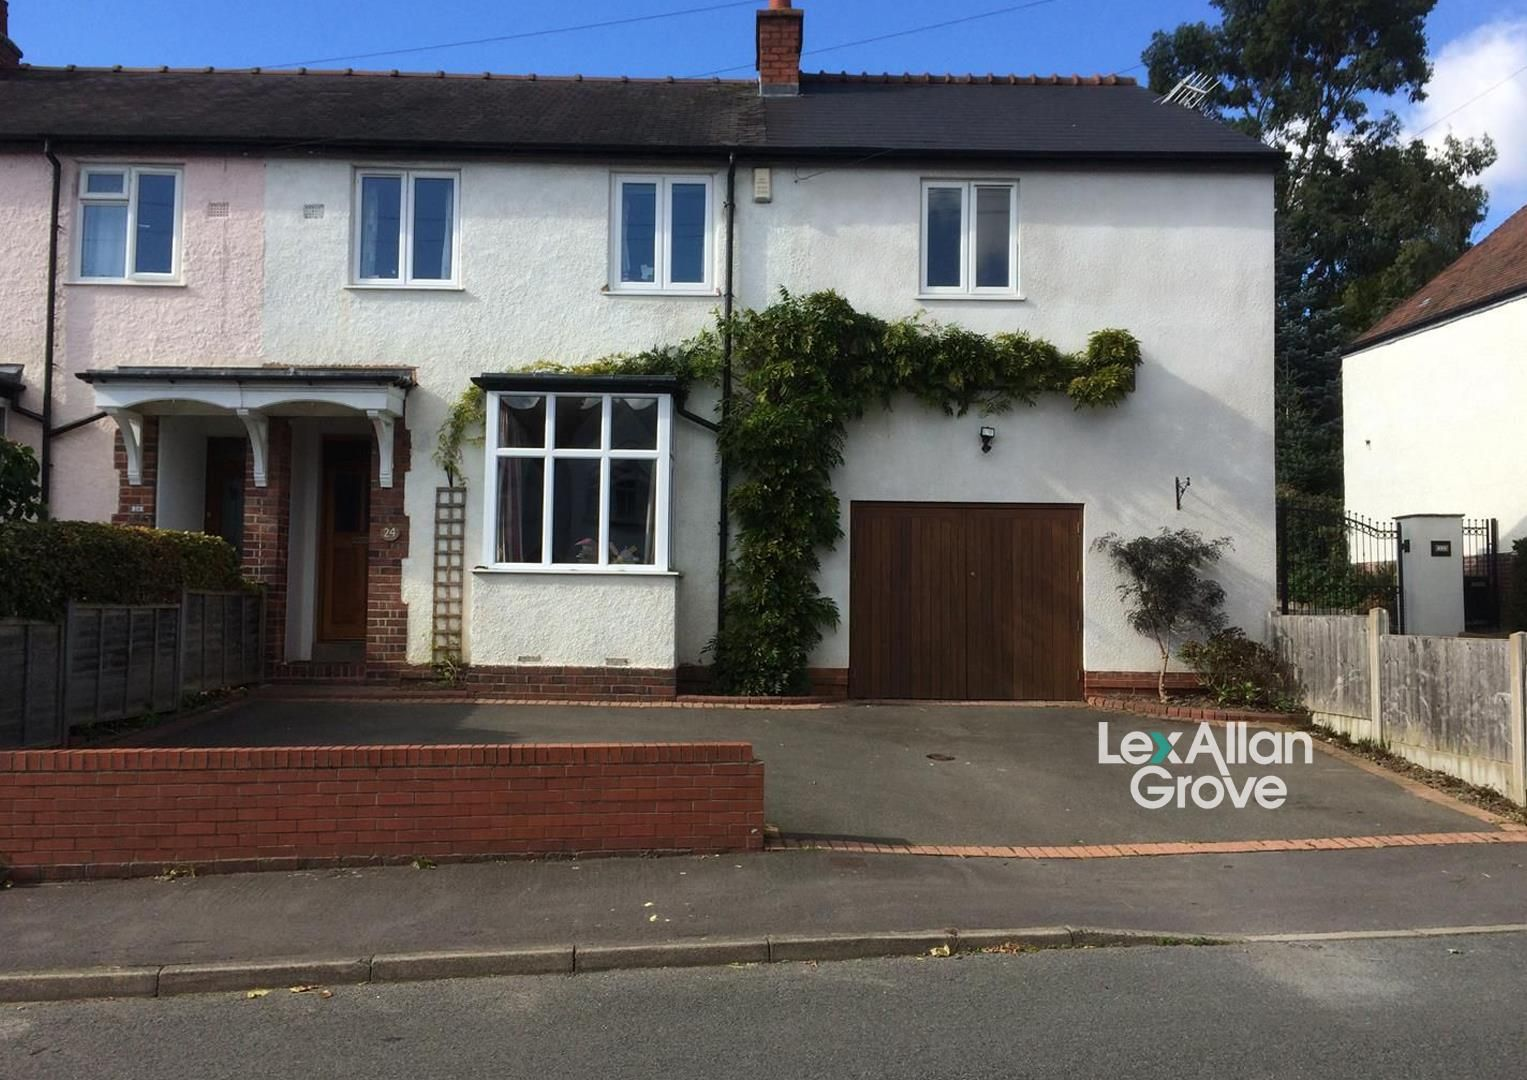 6 bed end-of-terrace for sale, B63